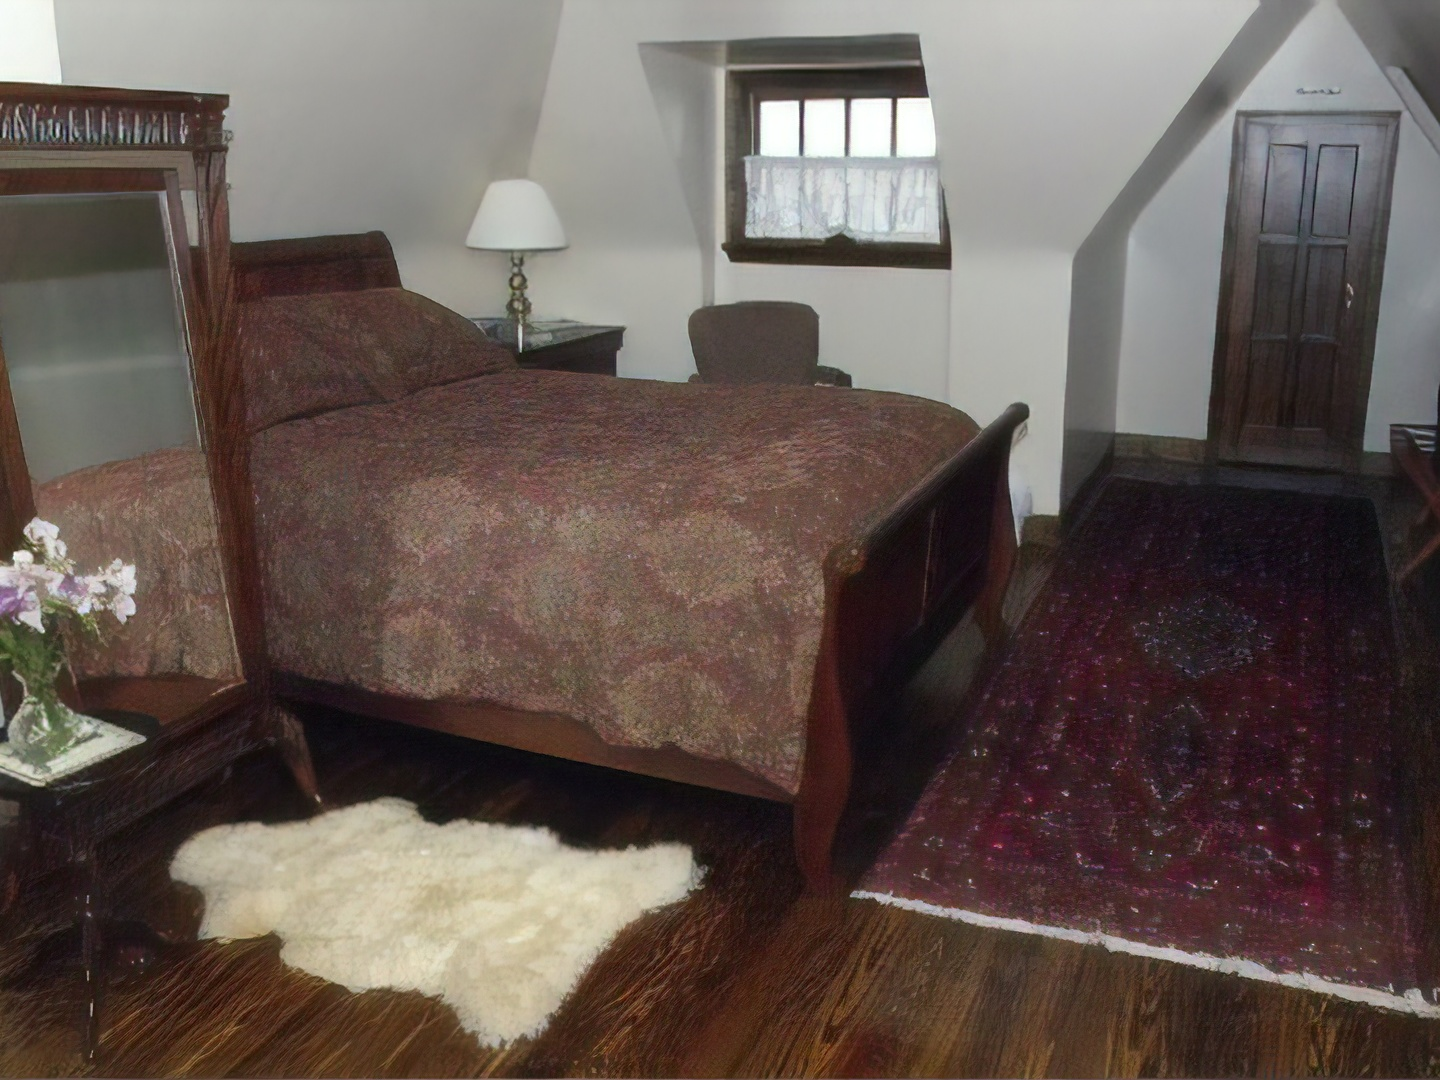 Painesville Bed and Breakfast